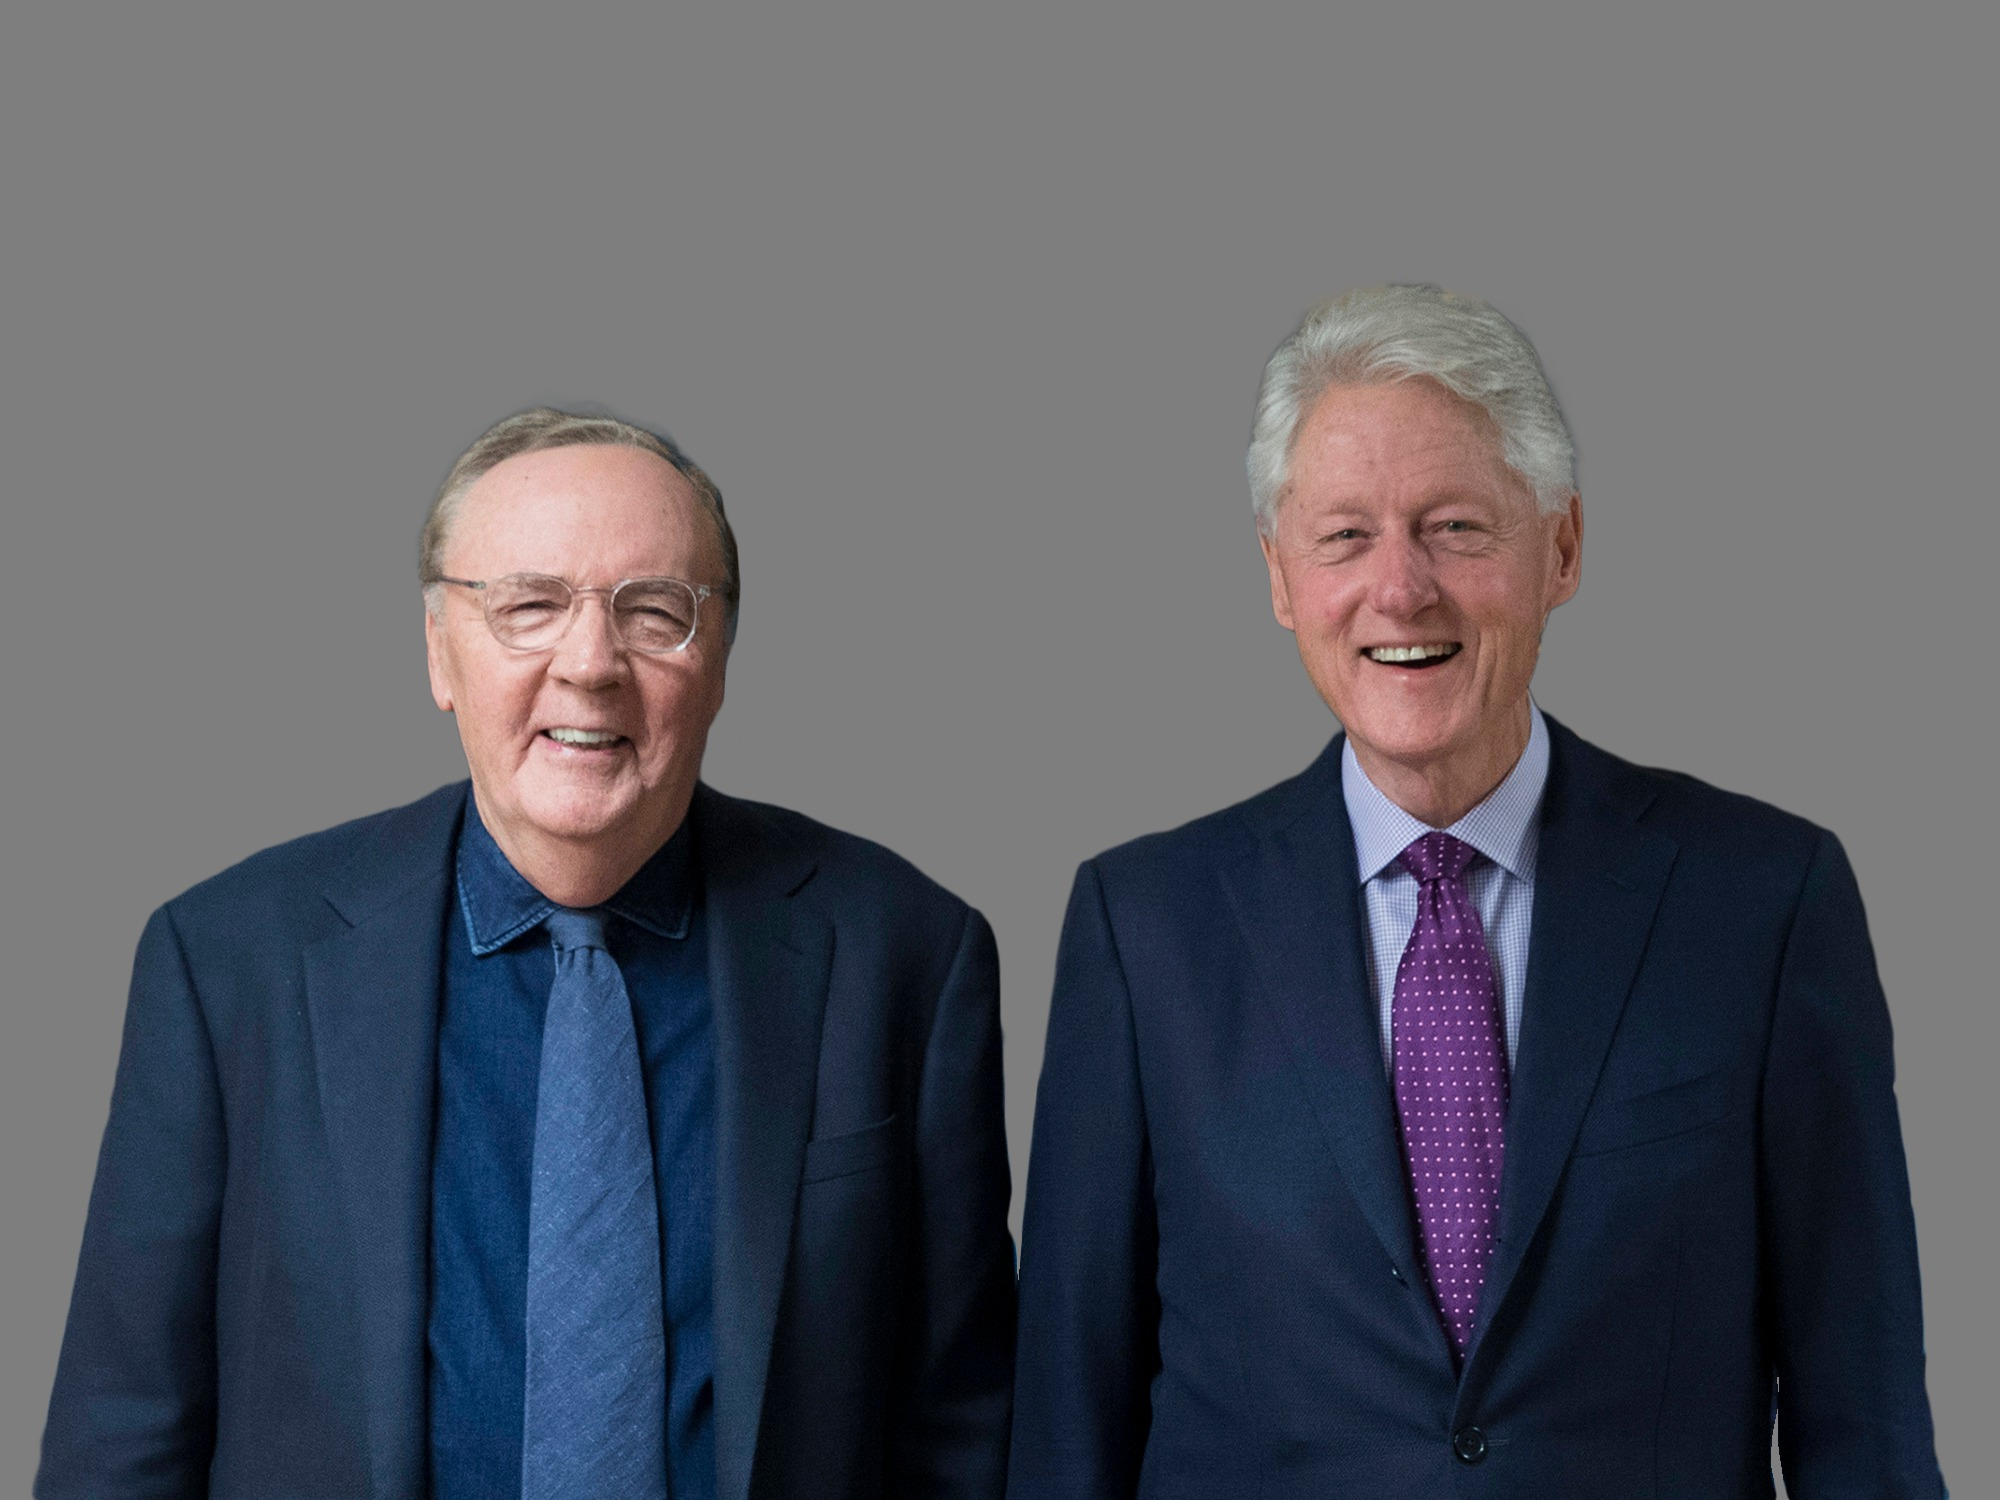 (L) James Patterson, author and Former President Bill Clinton